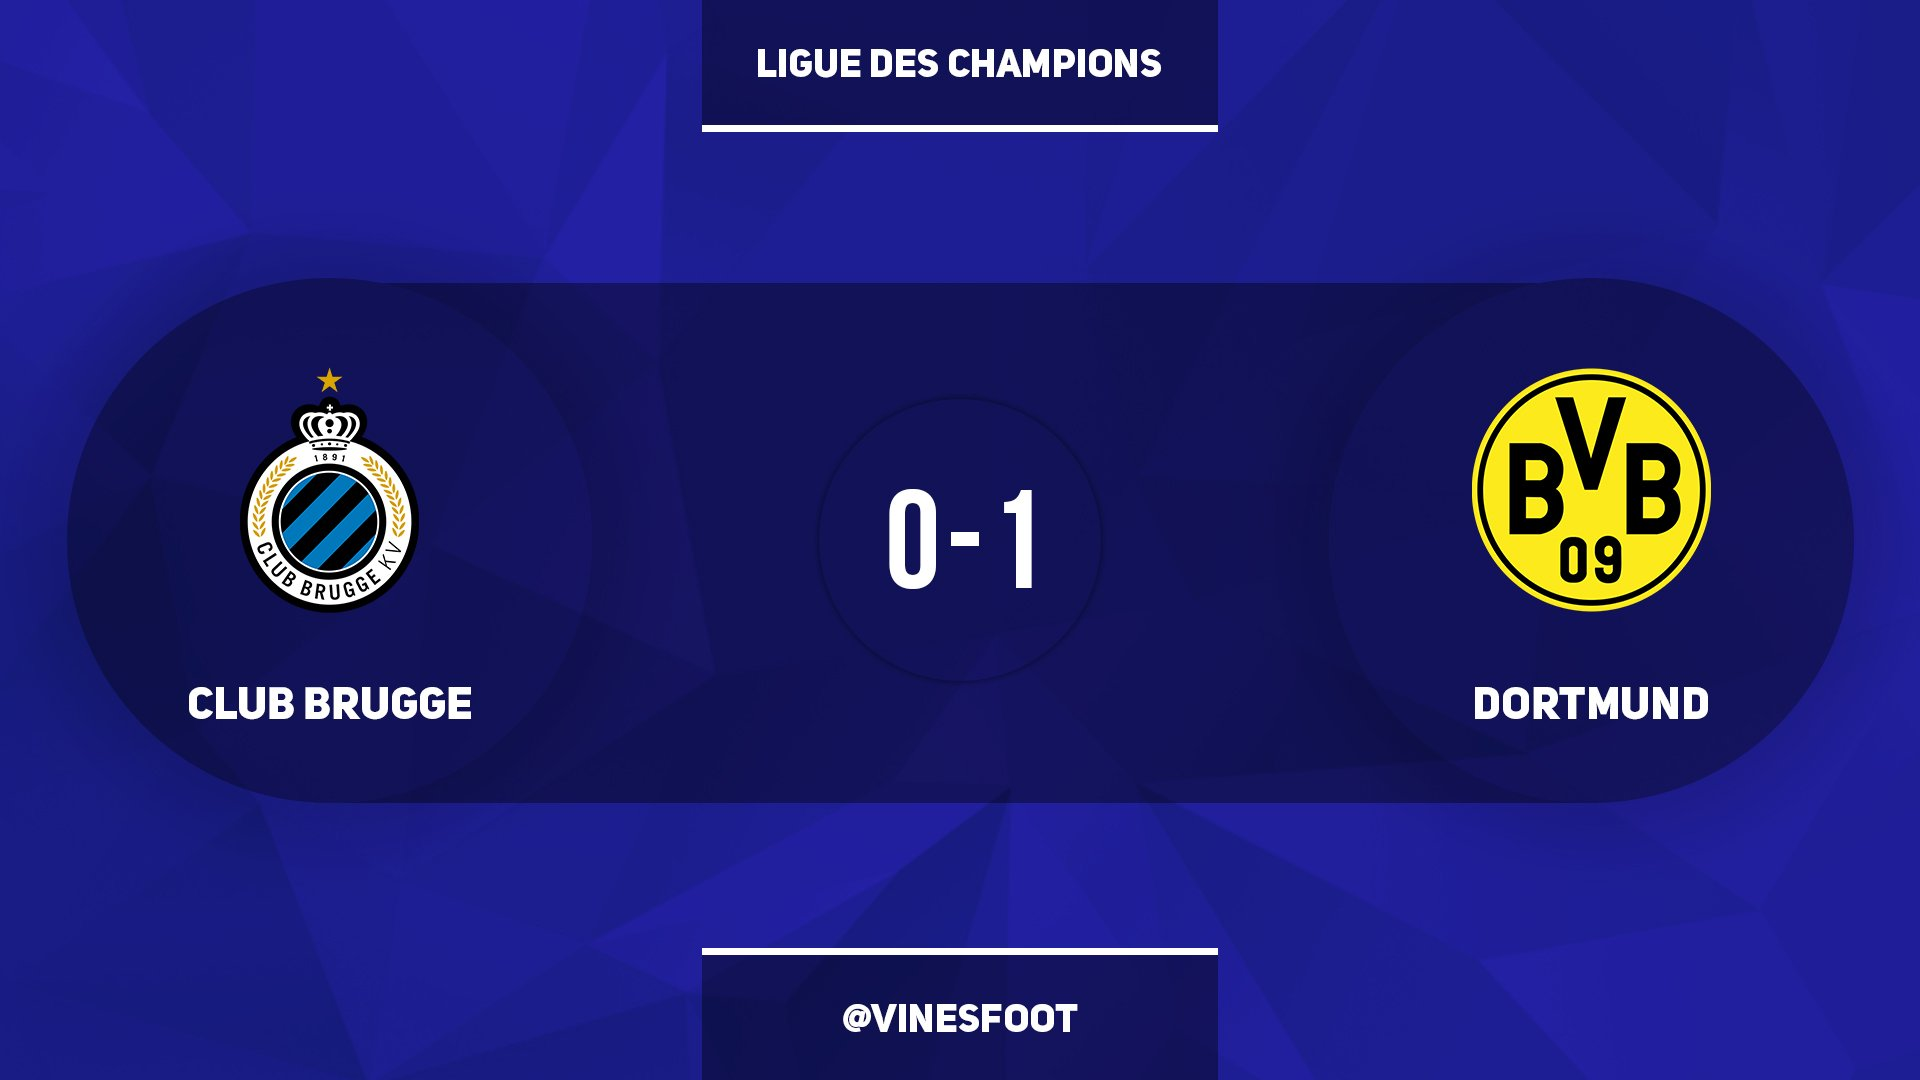 Vines Foot On Twitter Club Brugge 0 1 Dortmund